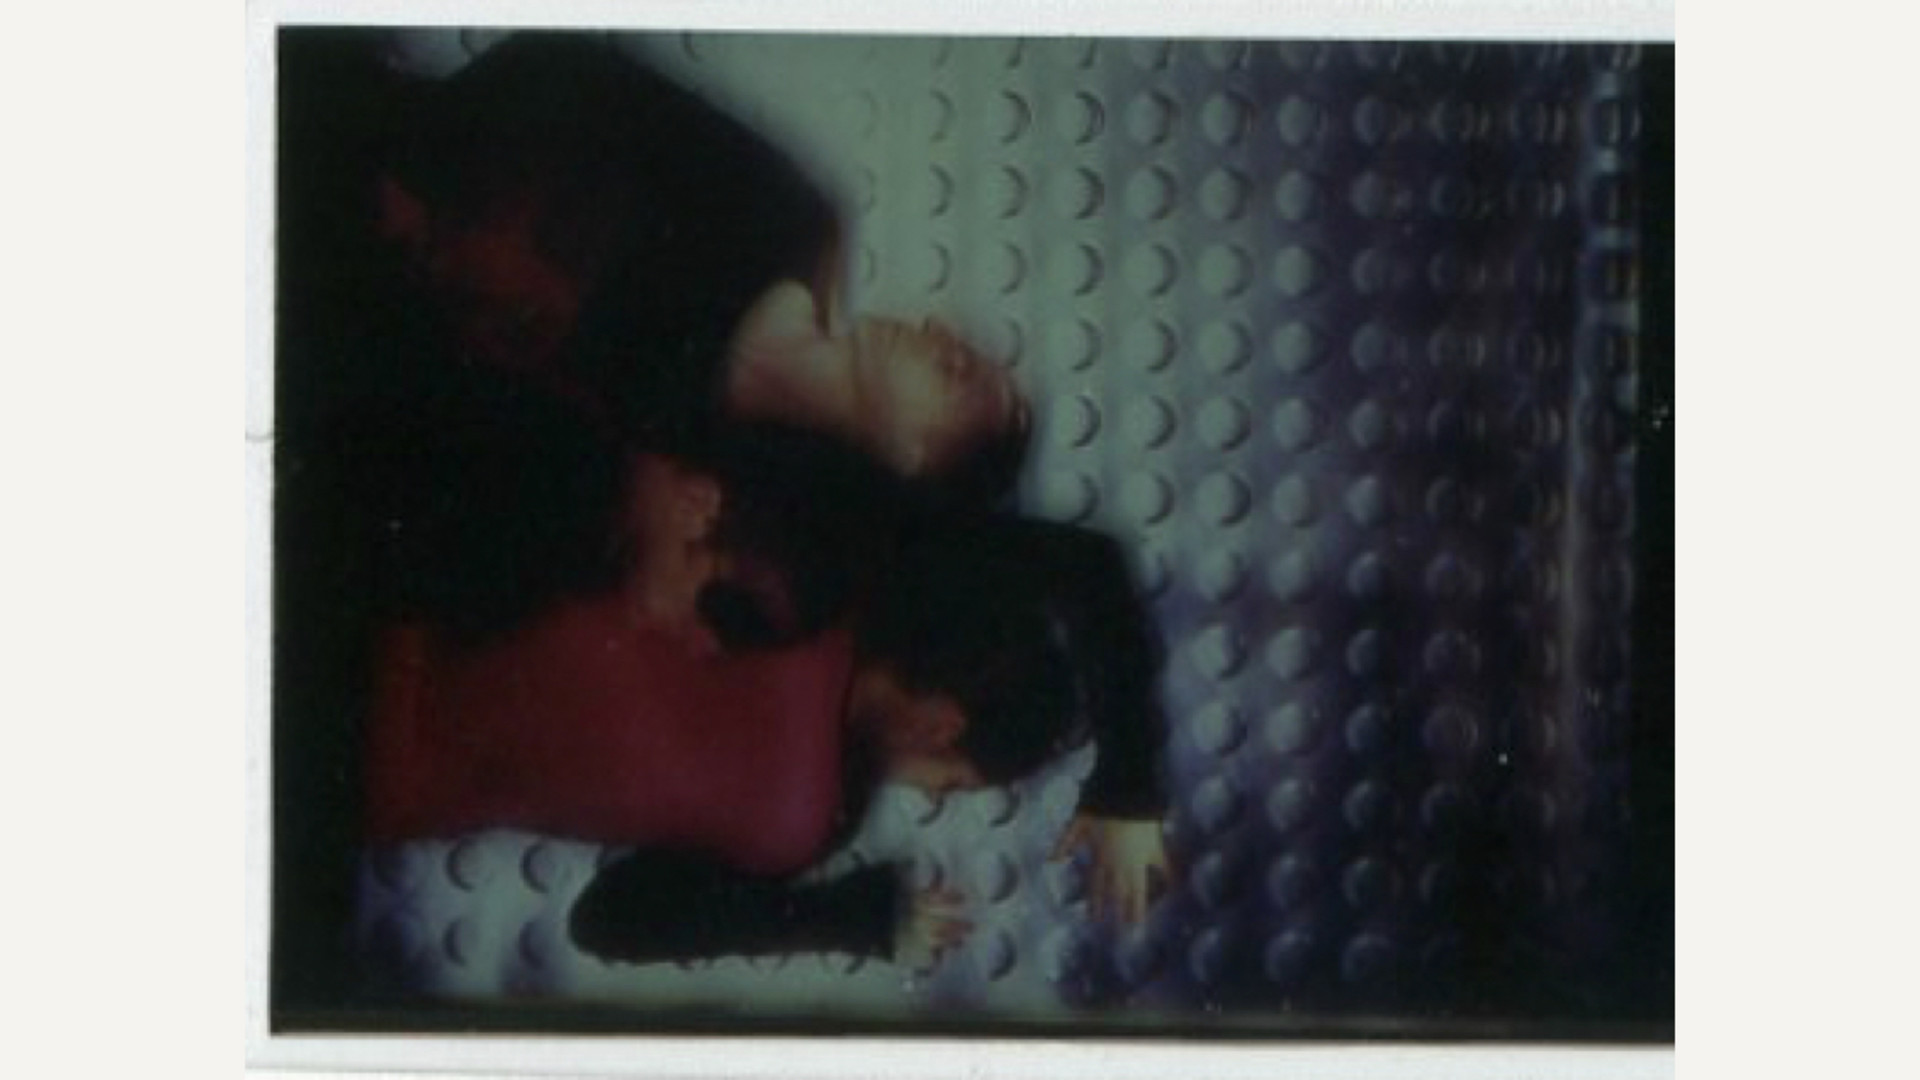 A blurred image of two dancers lying next to each other on a metallic surface dotted with small holes